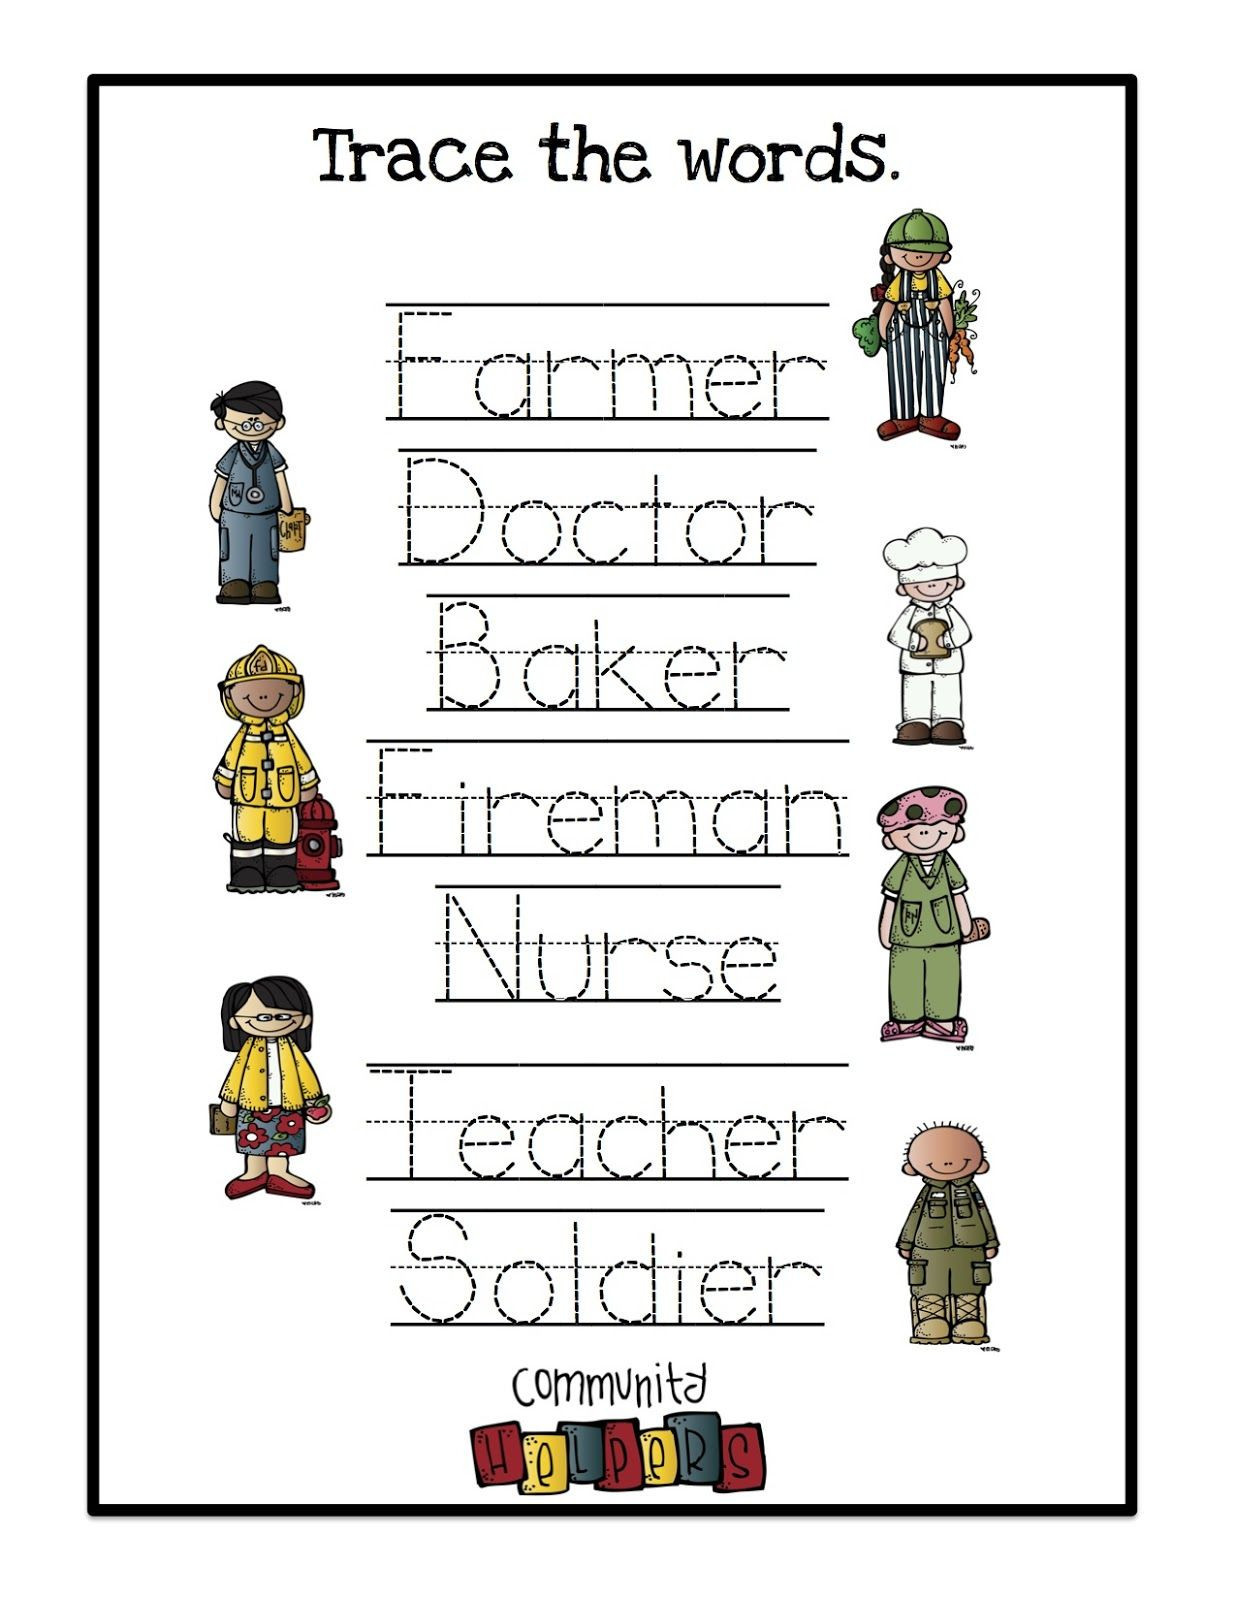 Community Helpers Worksheets Free Printables Munity Helpersoring Pages Preschool for toddlers